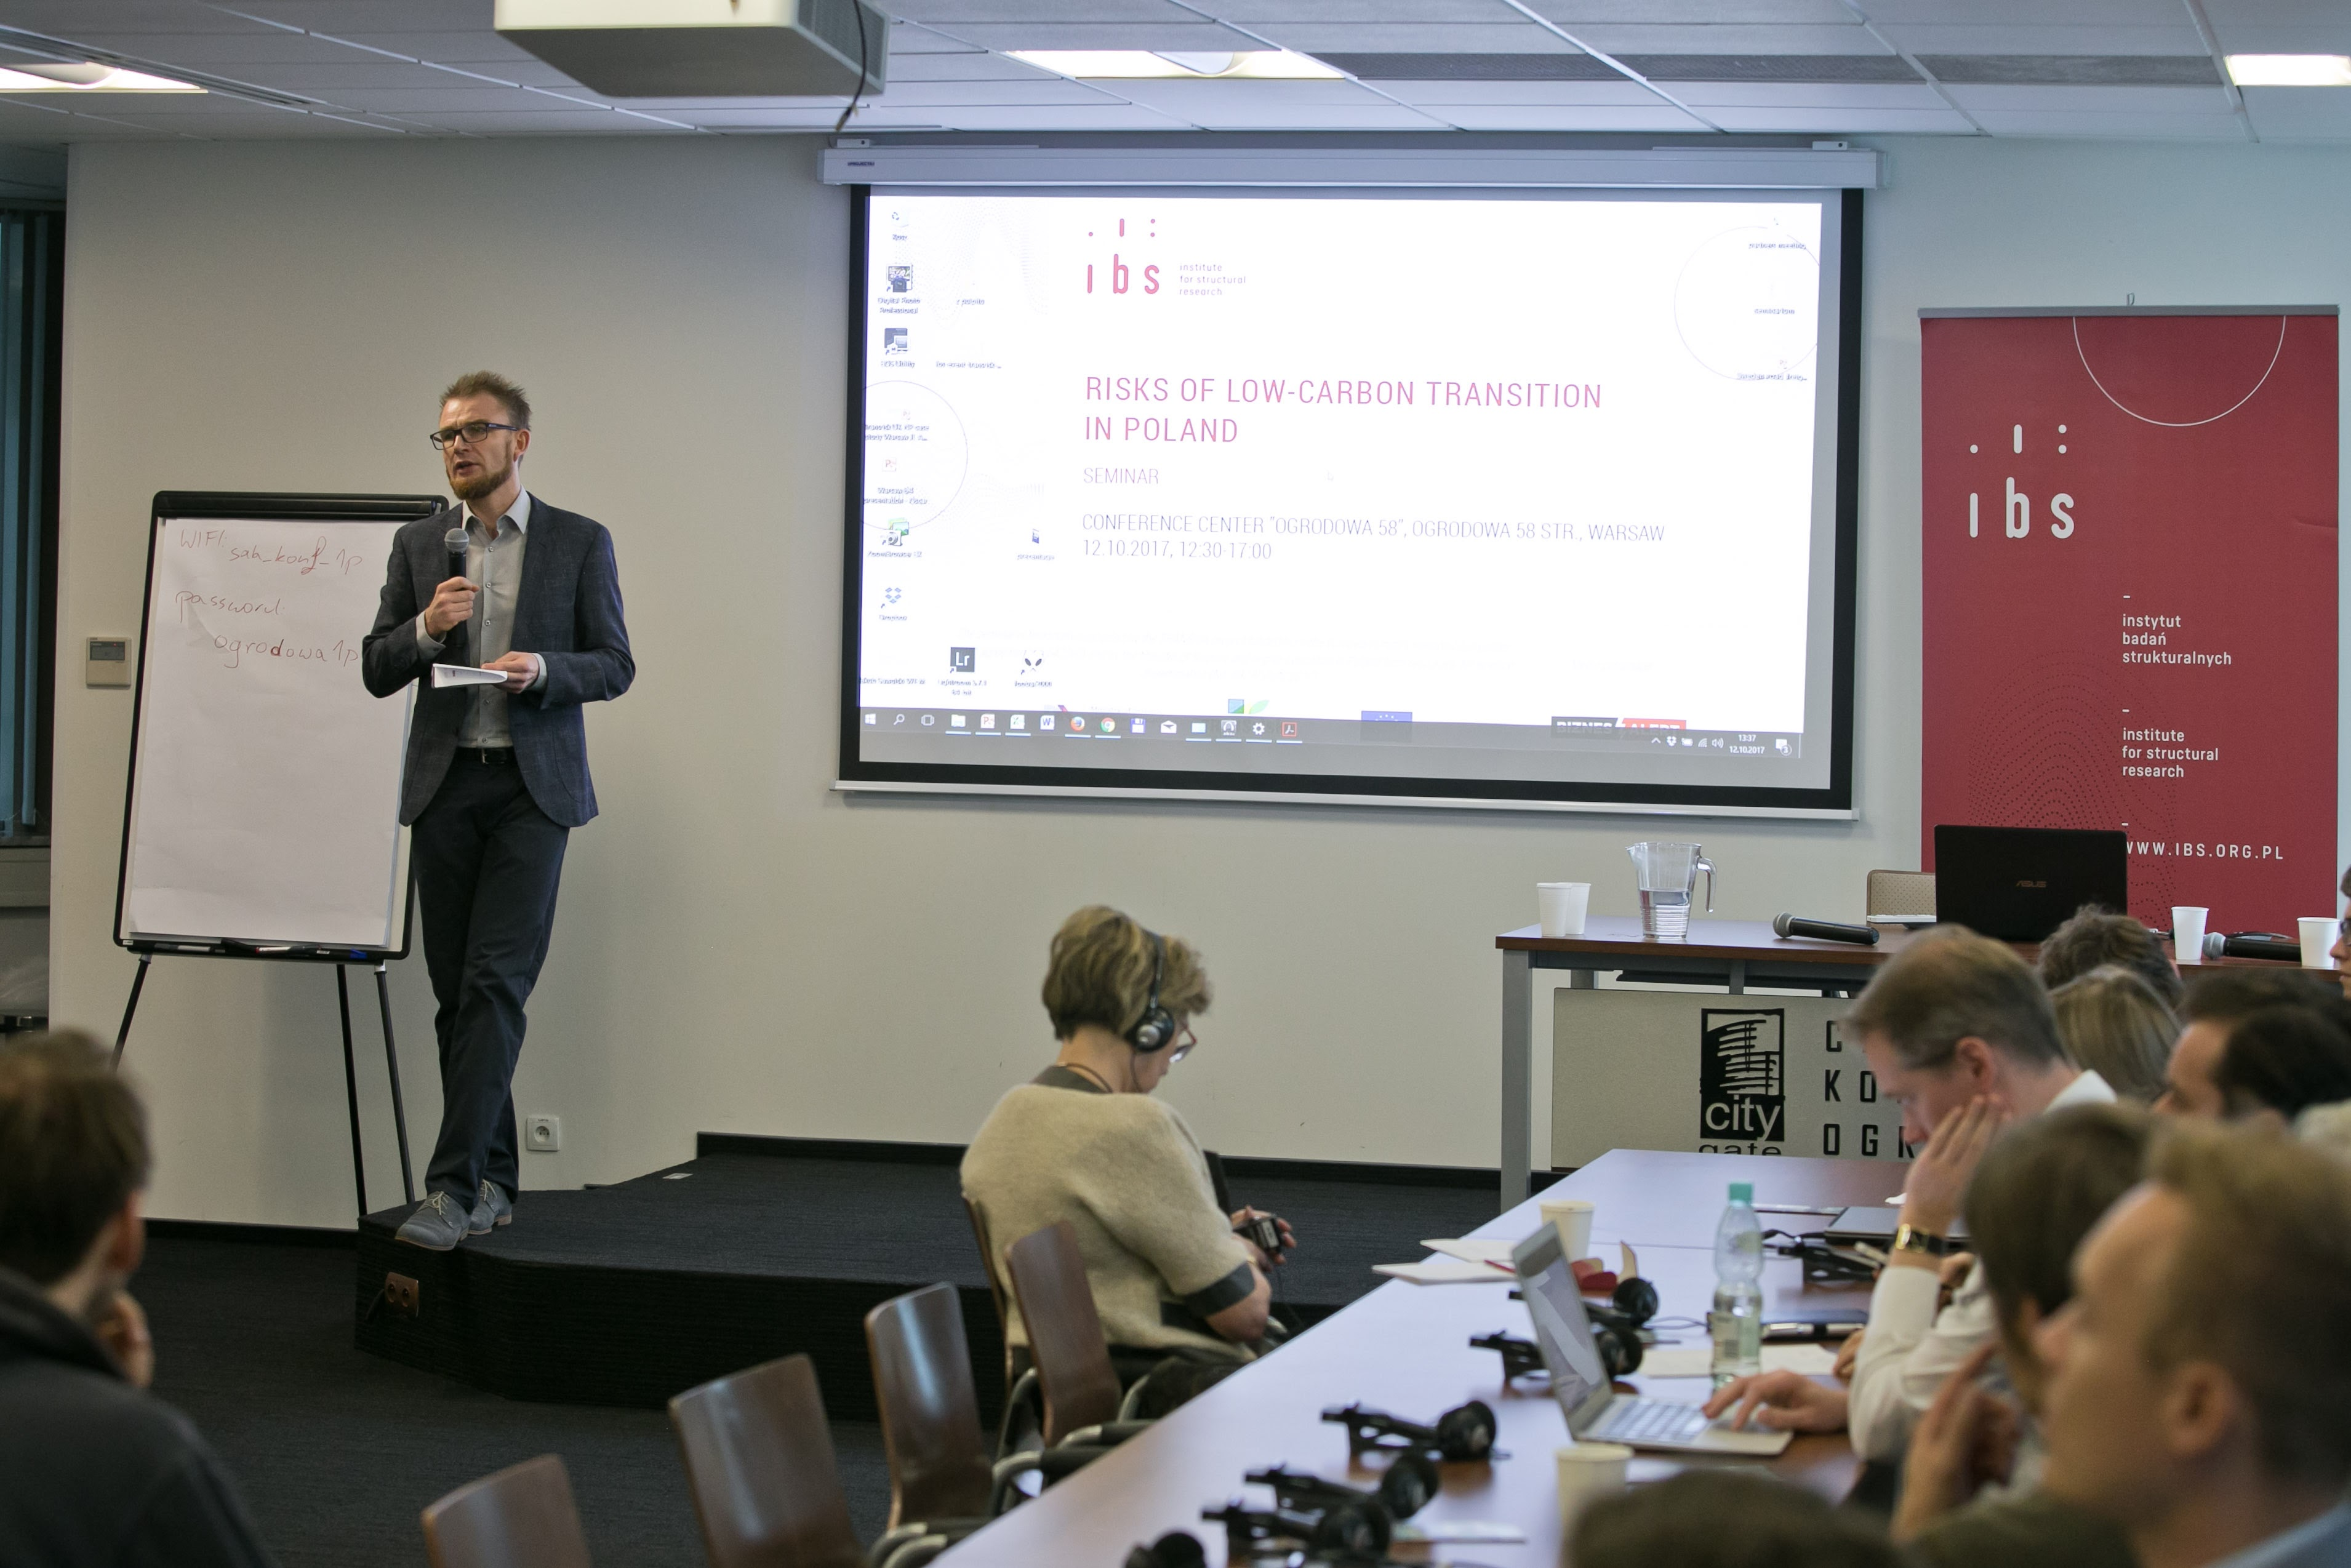 Piotr Lewandowski (Institute for Structural Research – IBS) welcoming the participants and introducing the workshop